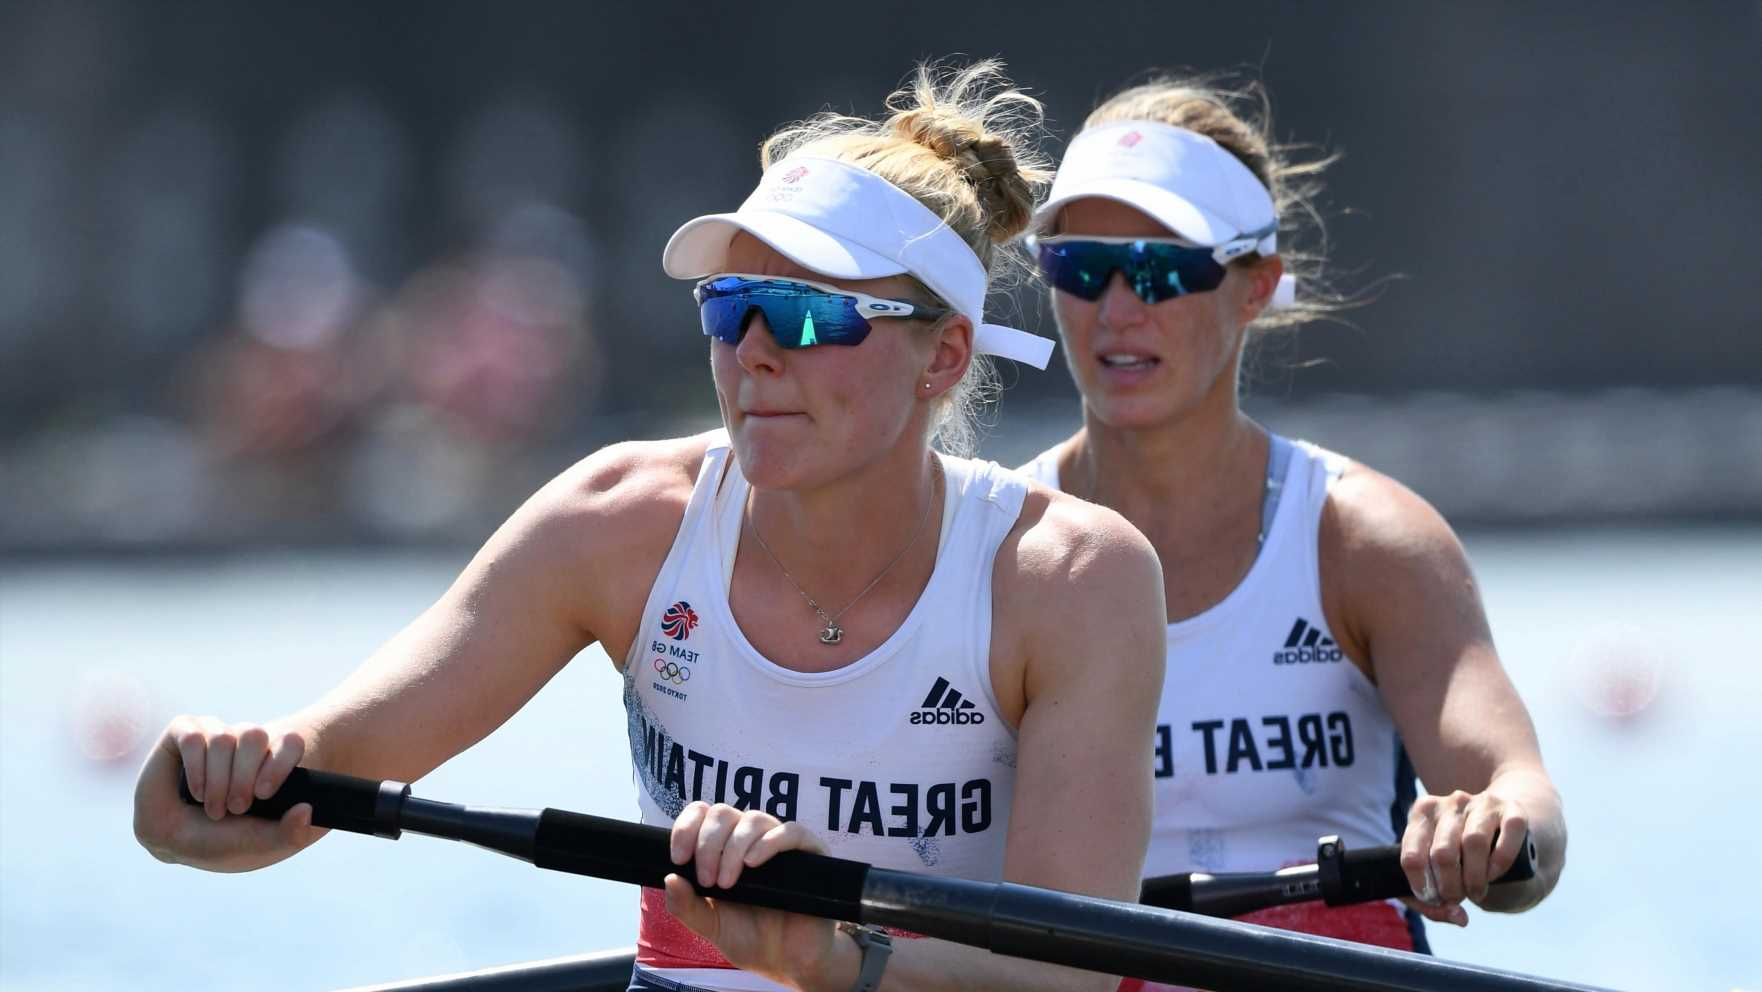 Helen Glover on course for Olympic medal to complete amazing comeback from retirement and 3 kids as she reaches final